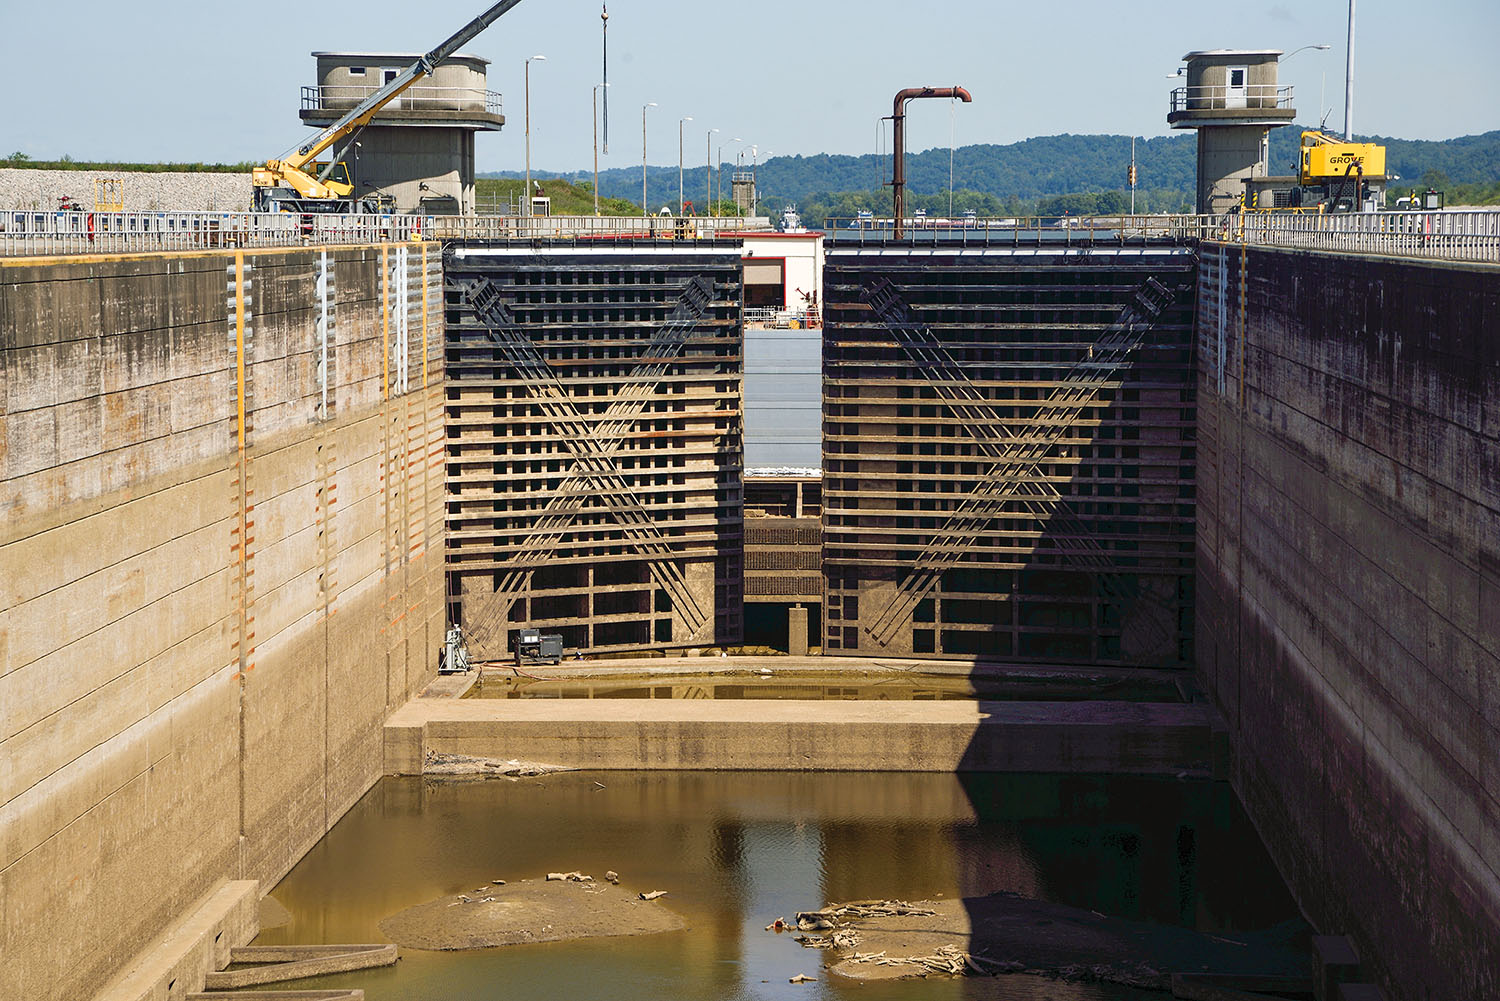 Repairs are underway to the upper miter gates on the main lock at the Robert C. Byrd Locks and Dam. The dam provides a 23-foot lift. (Photo by Jim Ross)